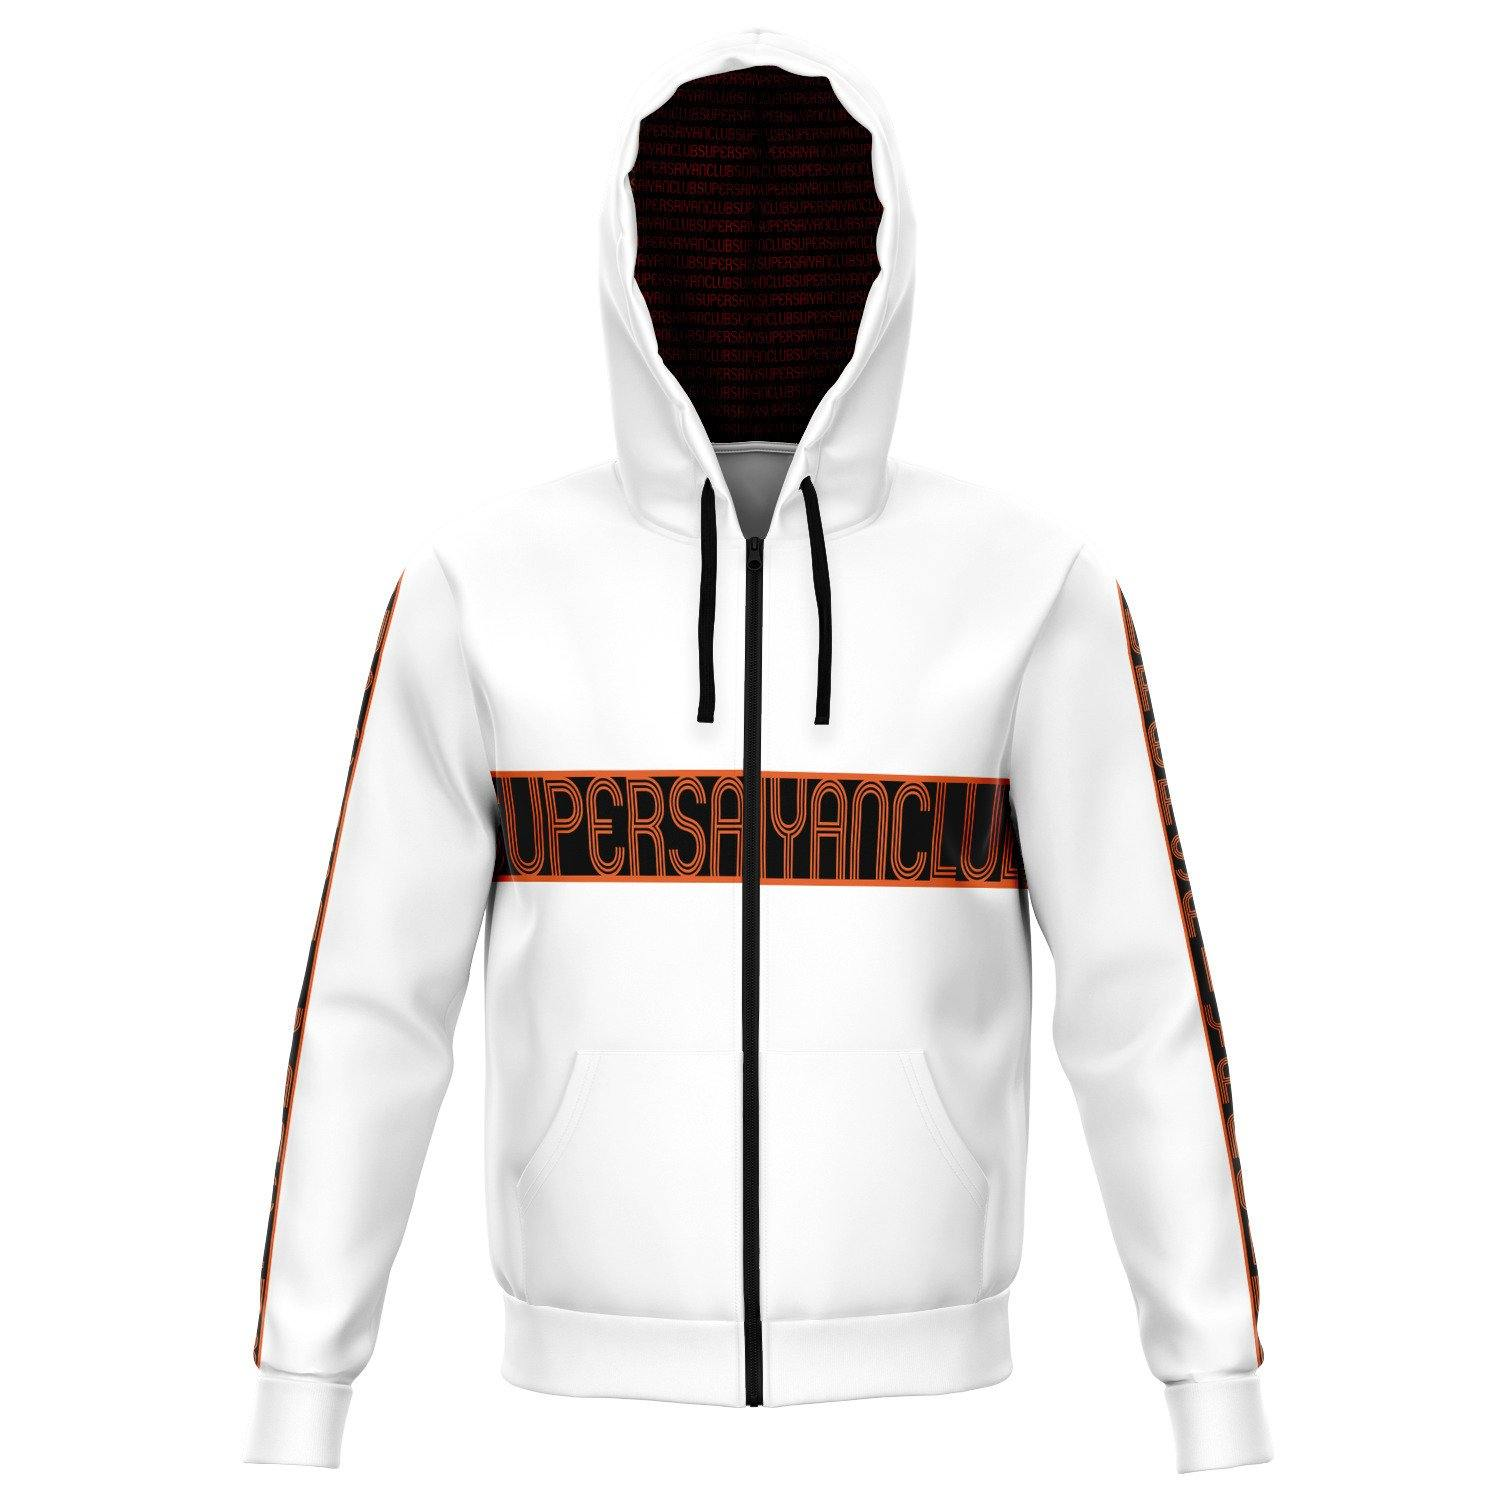 White SUPERSAIYANCLUB Zip Up Hoodie - PlanetGoku